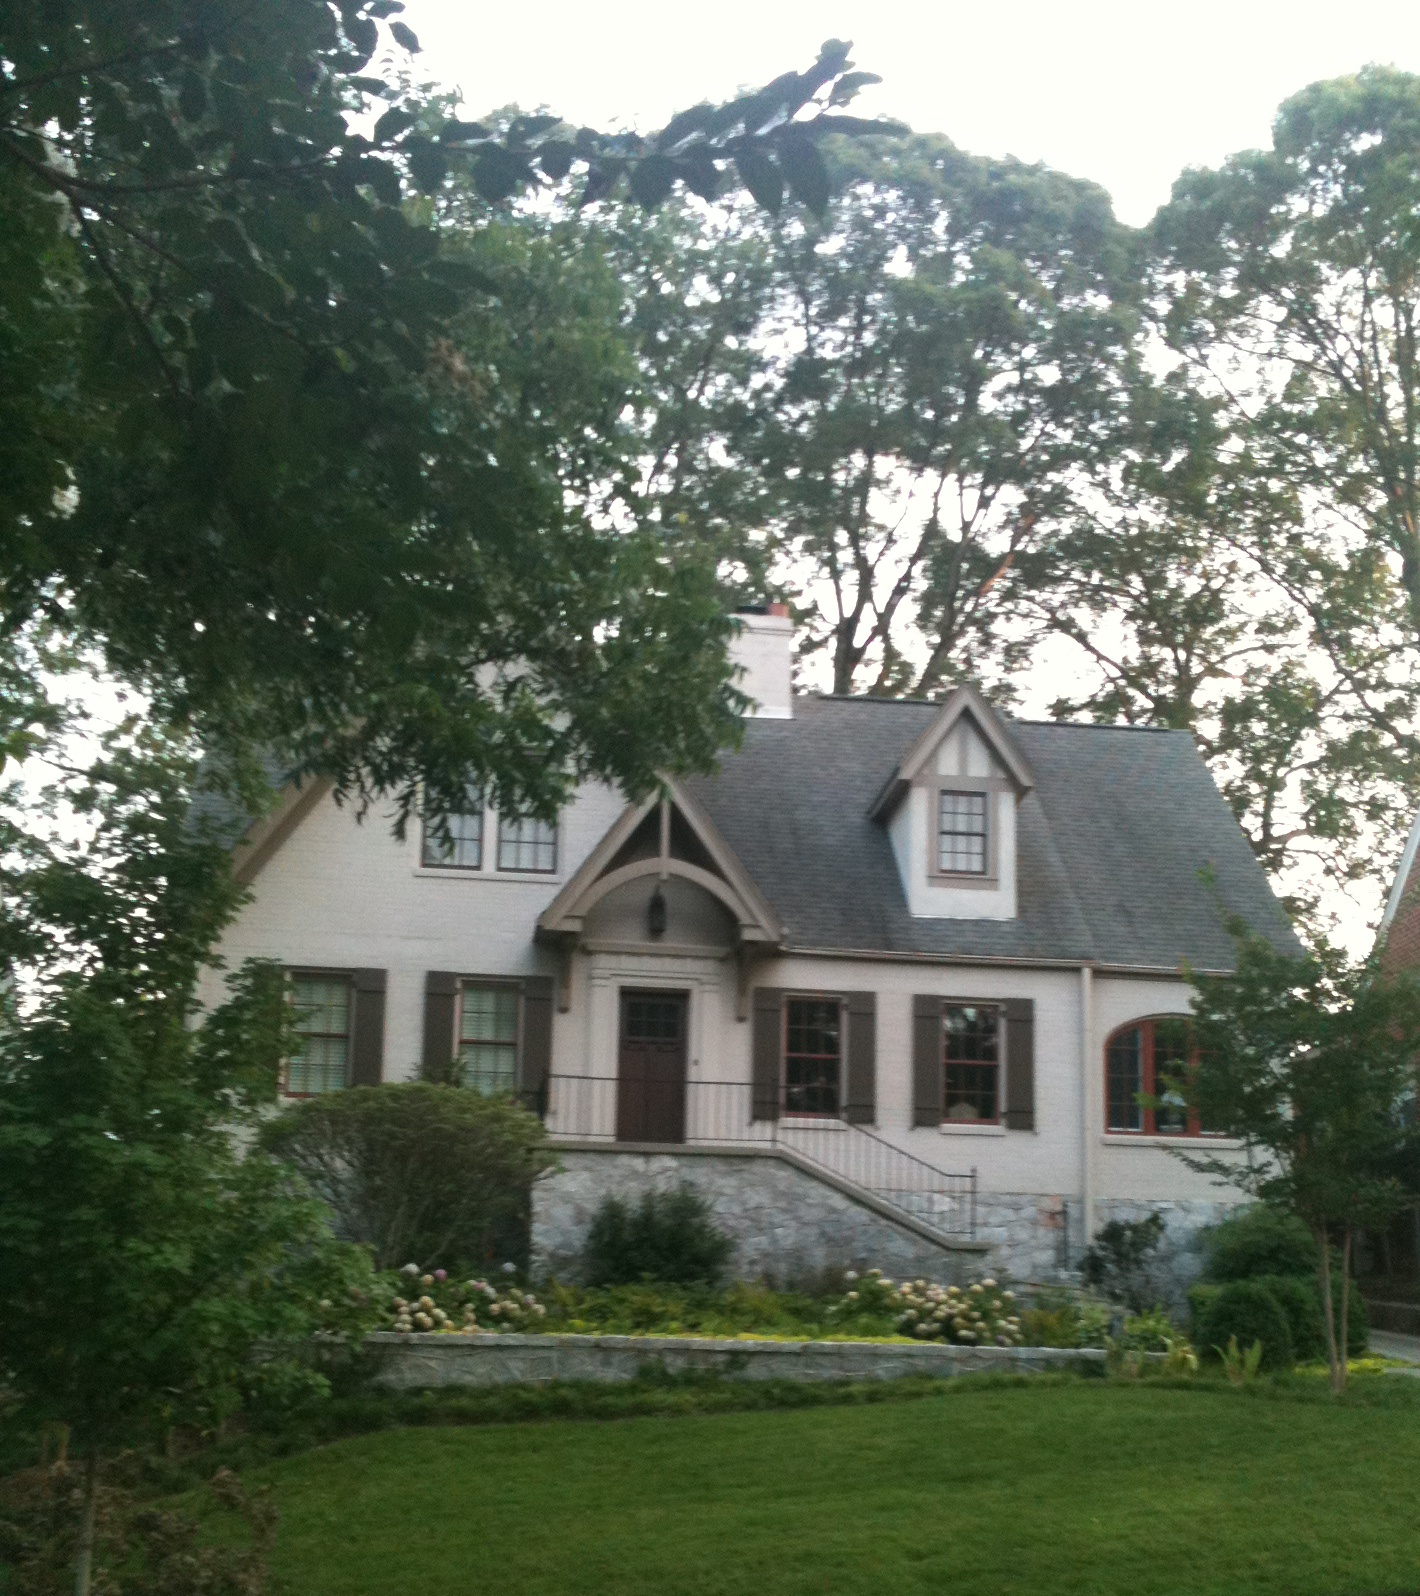 What Color Do I Paint My House: Pretty Old Houses: House Colors: Painted Brick With Dark Trim